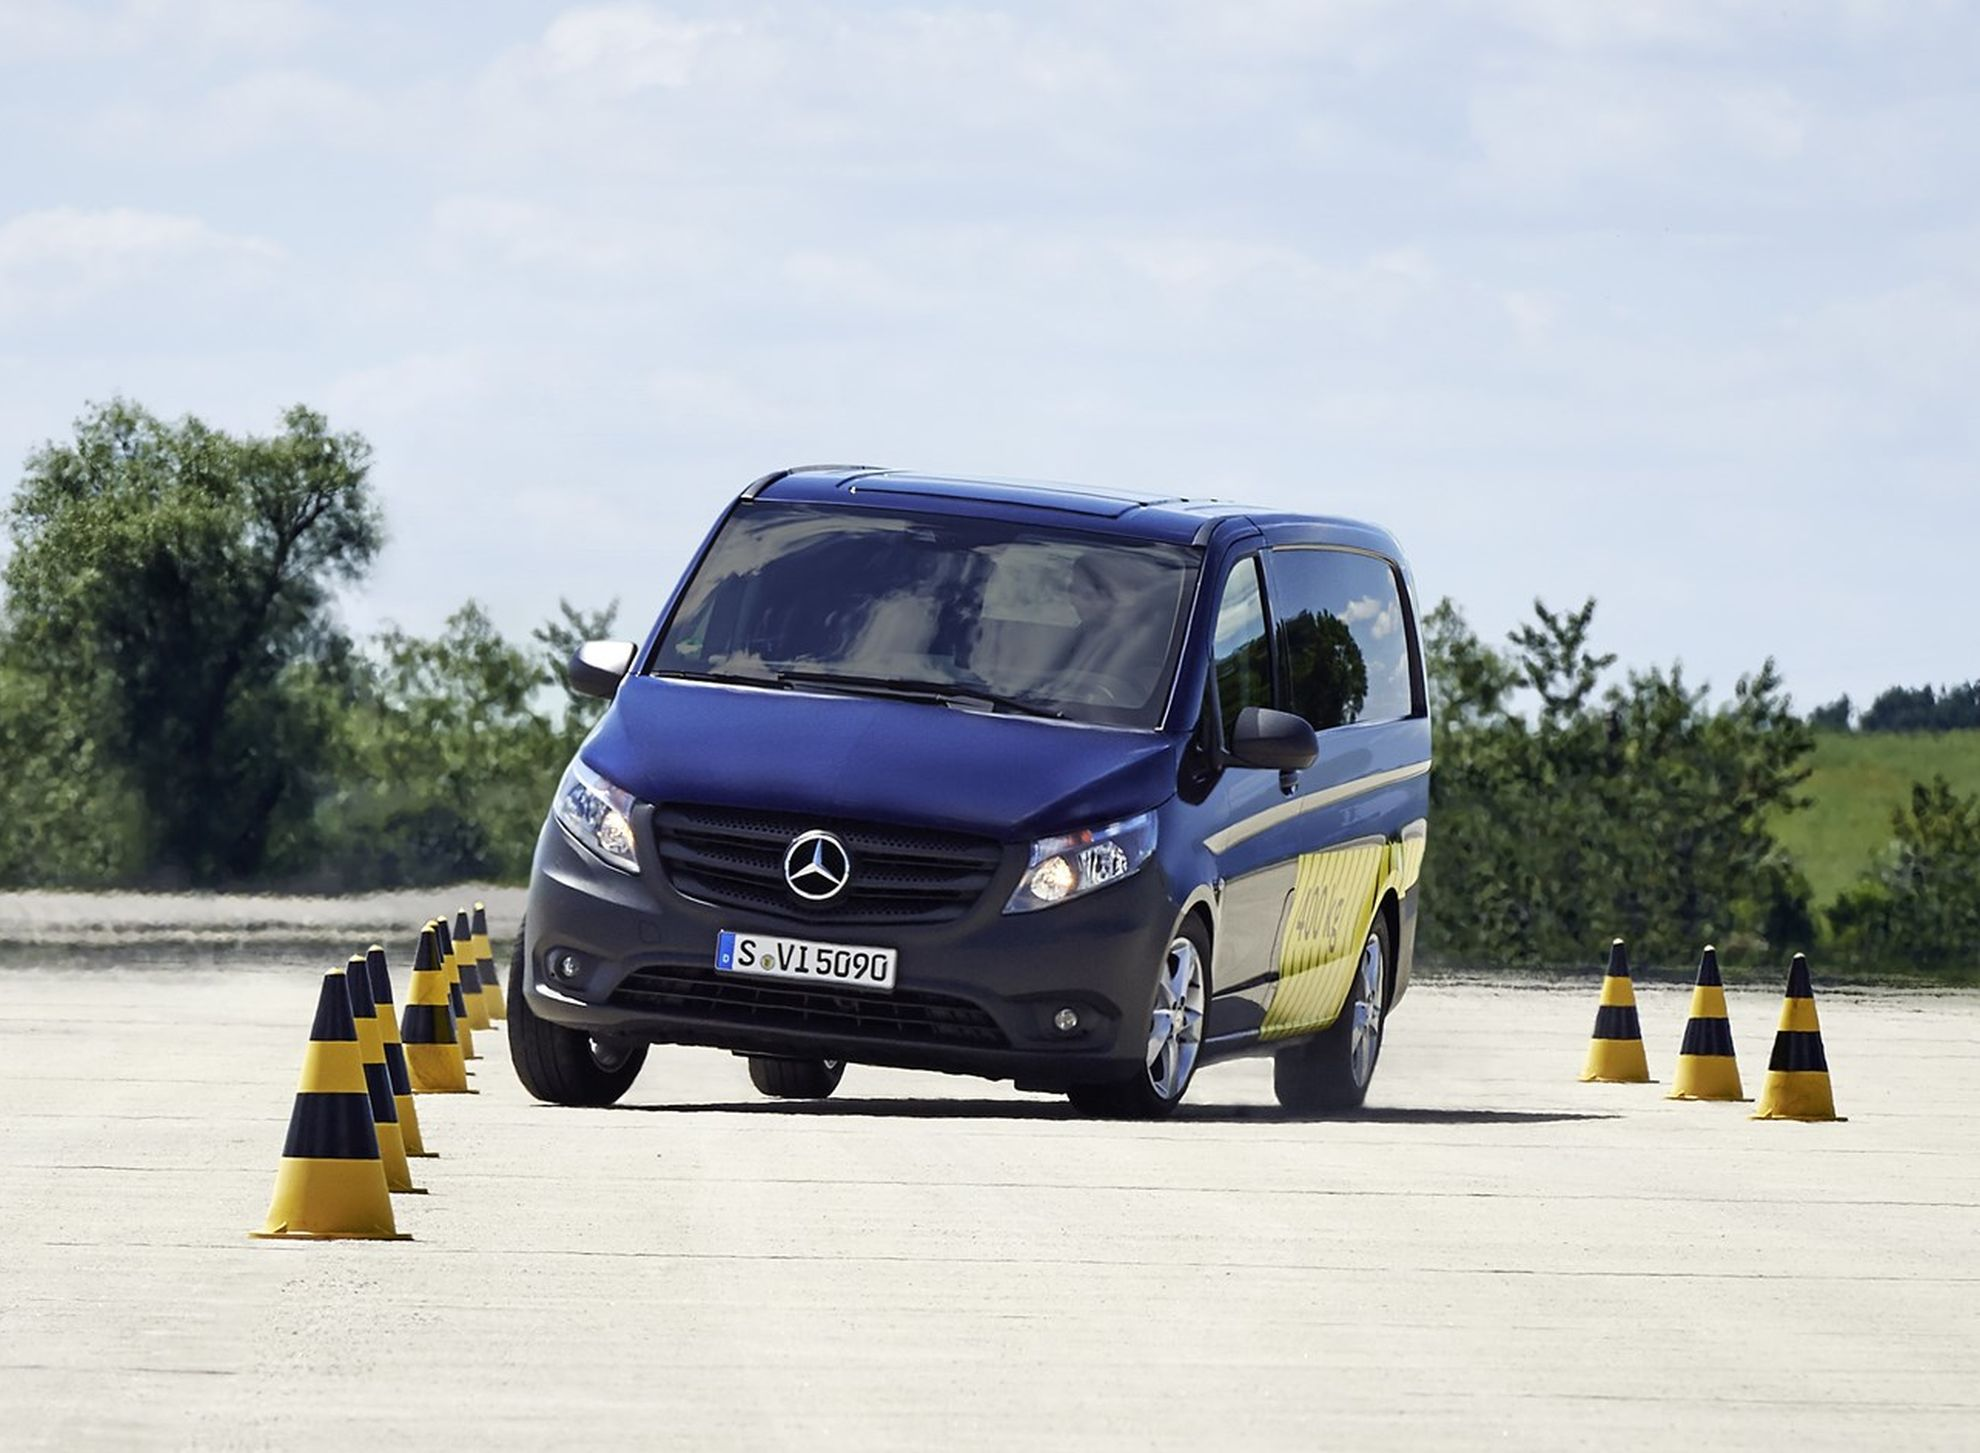 daimler-puts-new-safety-technology-on-the-road-close-up